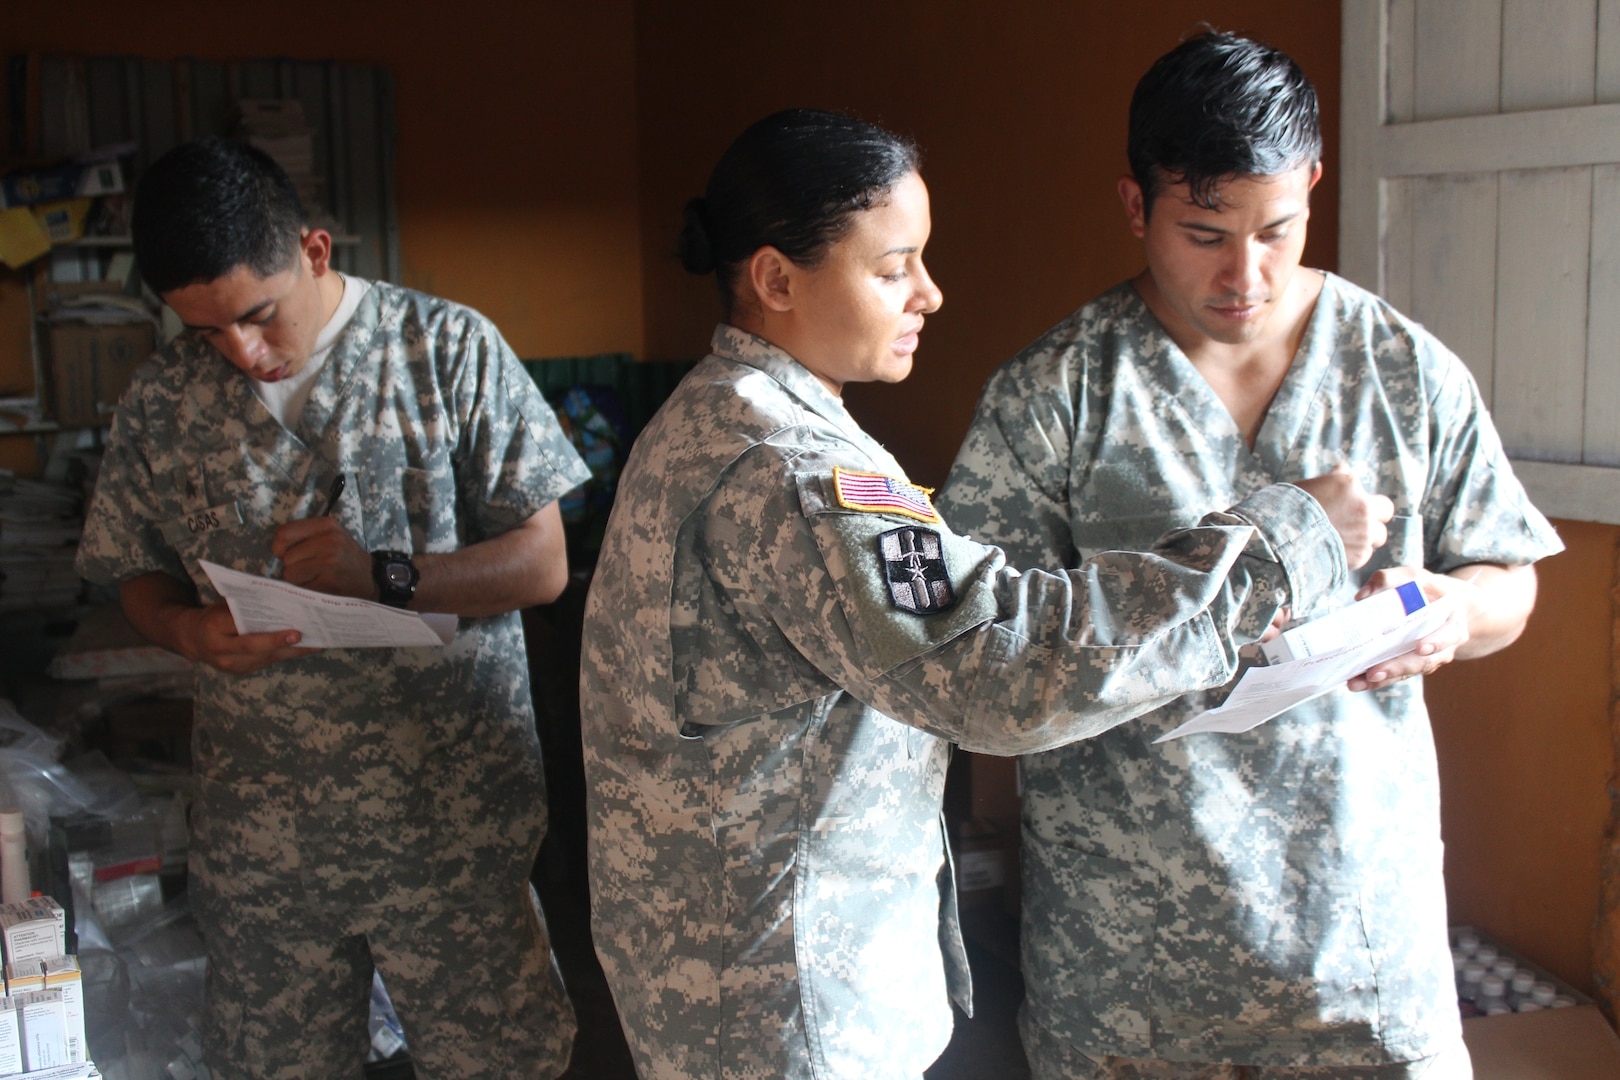 Service members from Joint Task Force-Bravo Medical Element assigned to pharmacy duties, read prescriptions before dispatching to the local population during a Medical Readiness Training Exercise in Nueva Jerusalén, Gracias a Dios Department, Honduras, Jan. 28, 2016. This is the final station that patients visit after receiving a basic health class, going through a screening process, and after seeing a medical provider. (U.S. Army photo by Maria Pinel/Released)